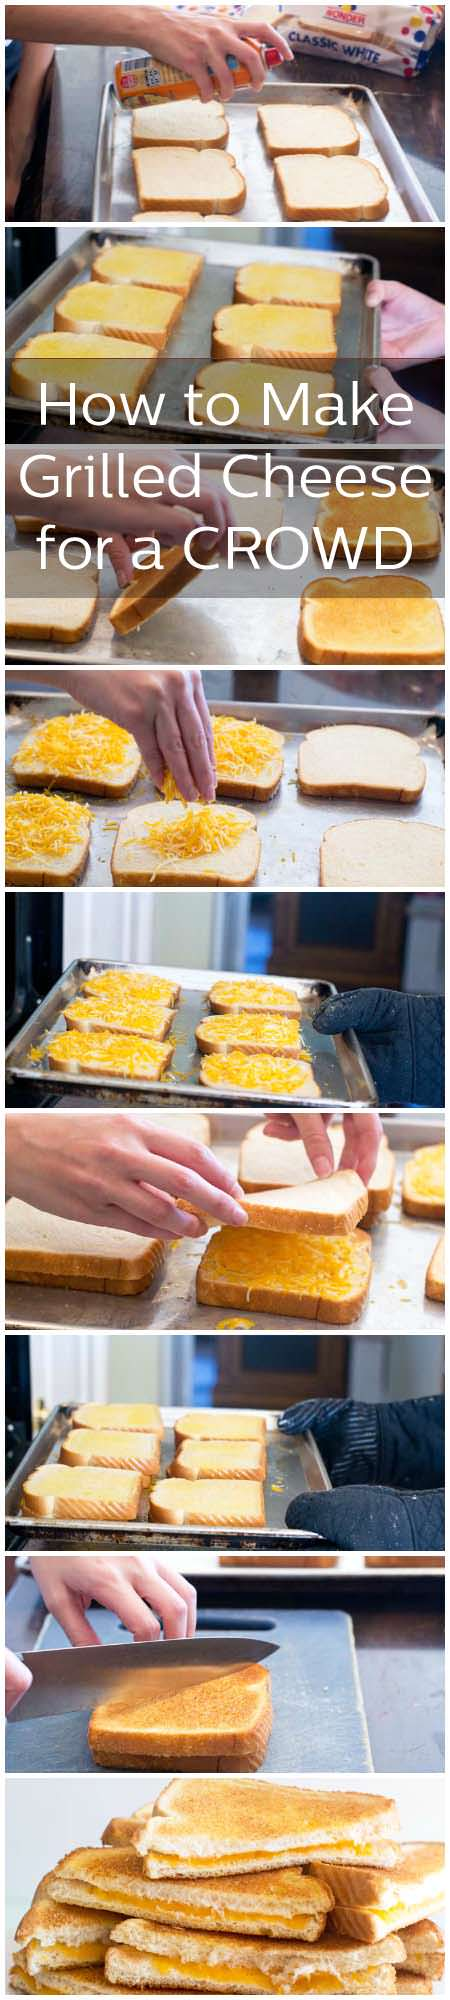 Learn how to use your broiler to whip up a big batch of grilled cheese sandwiches for a crowd with little fuss. You're not going to believe how quick and easy this is.